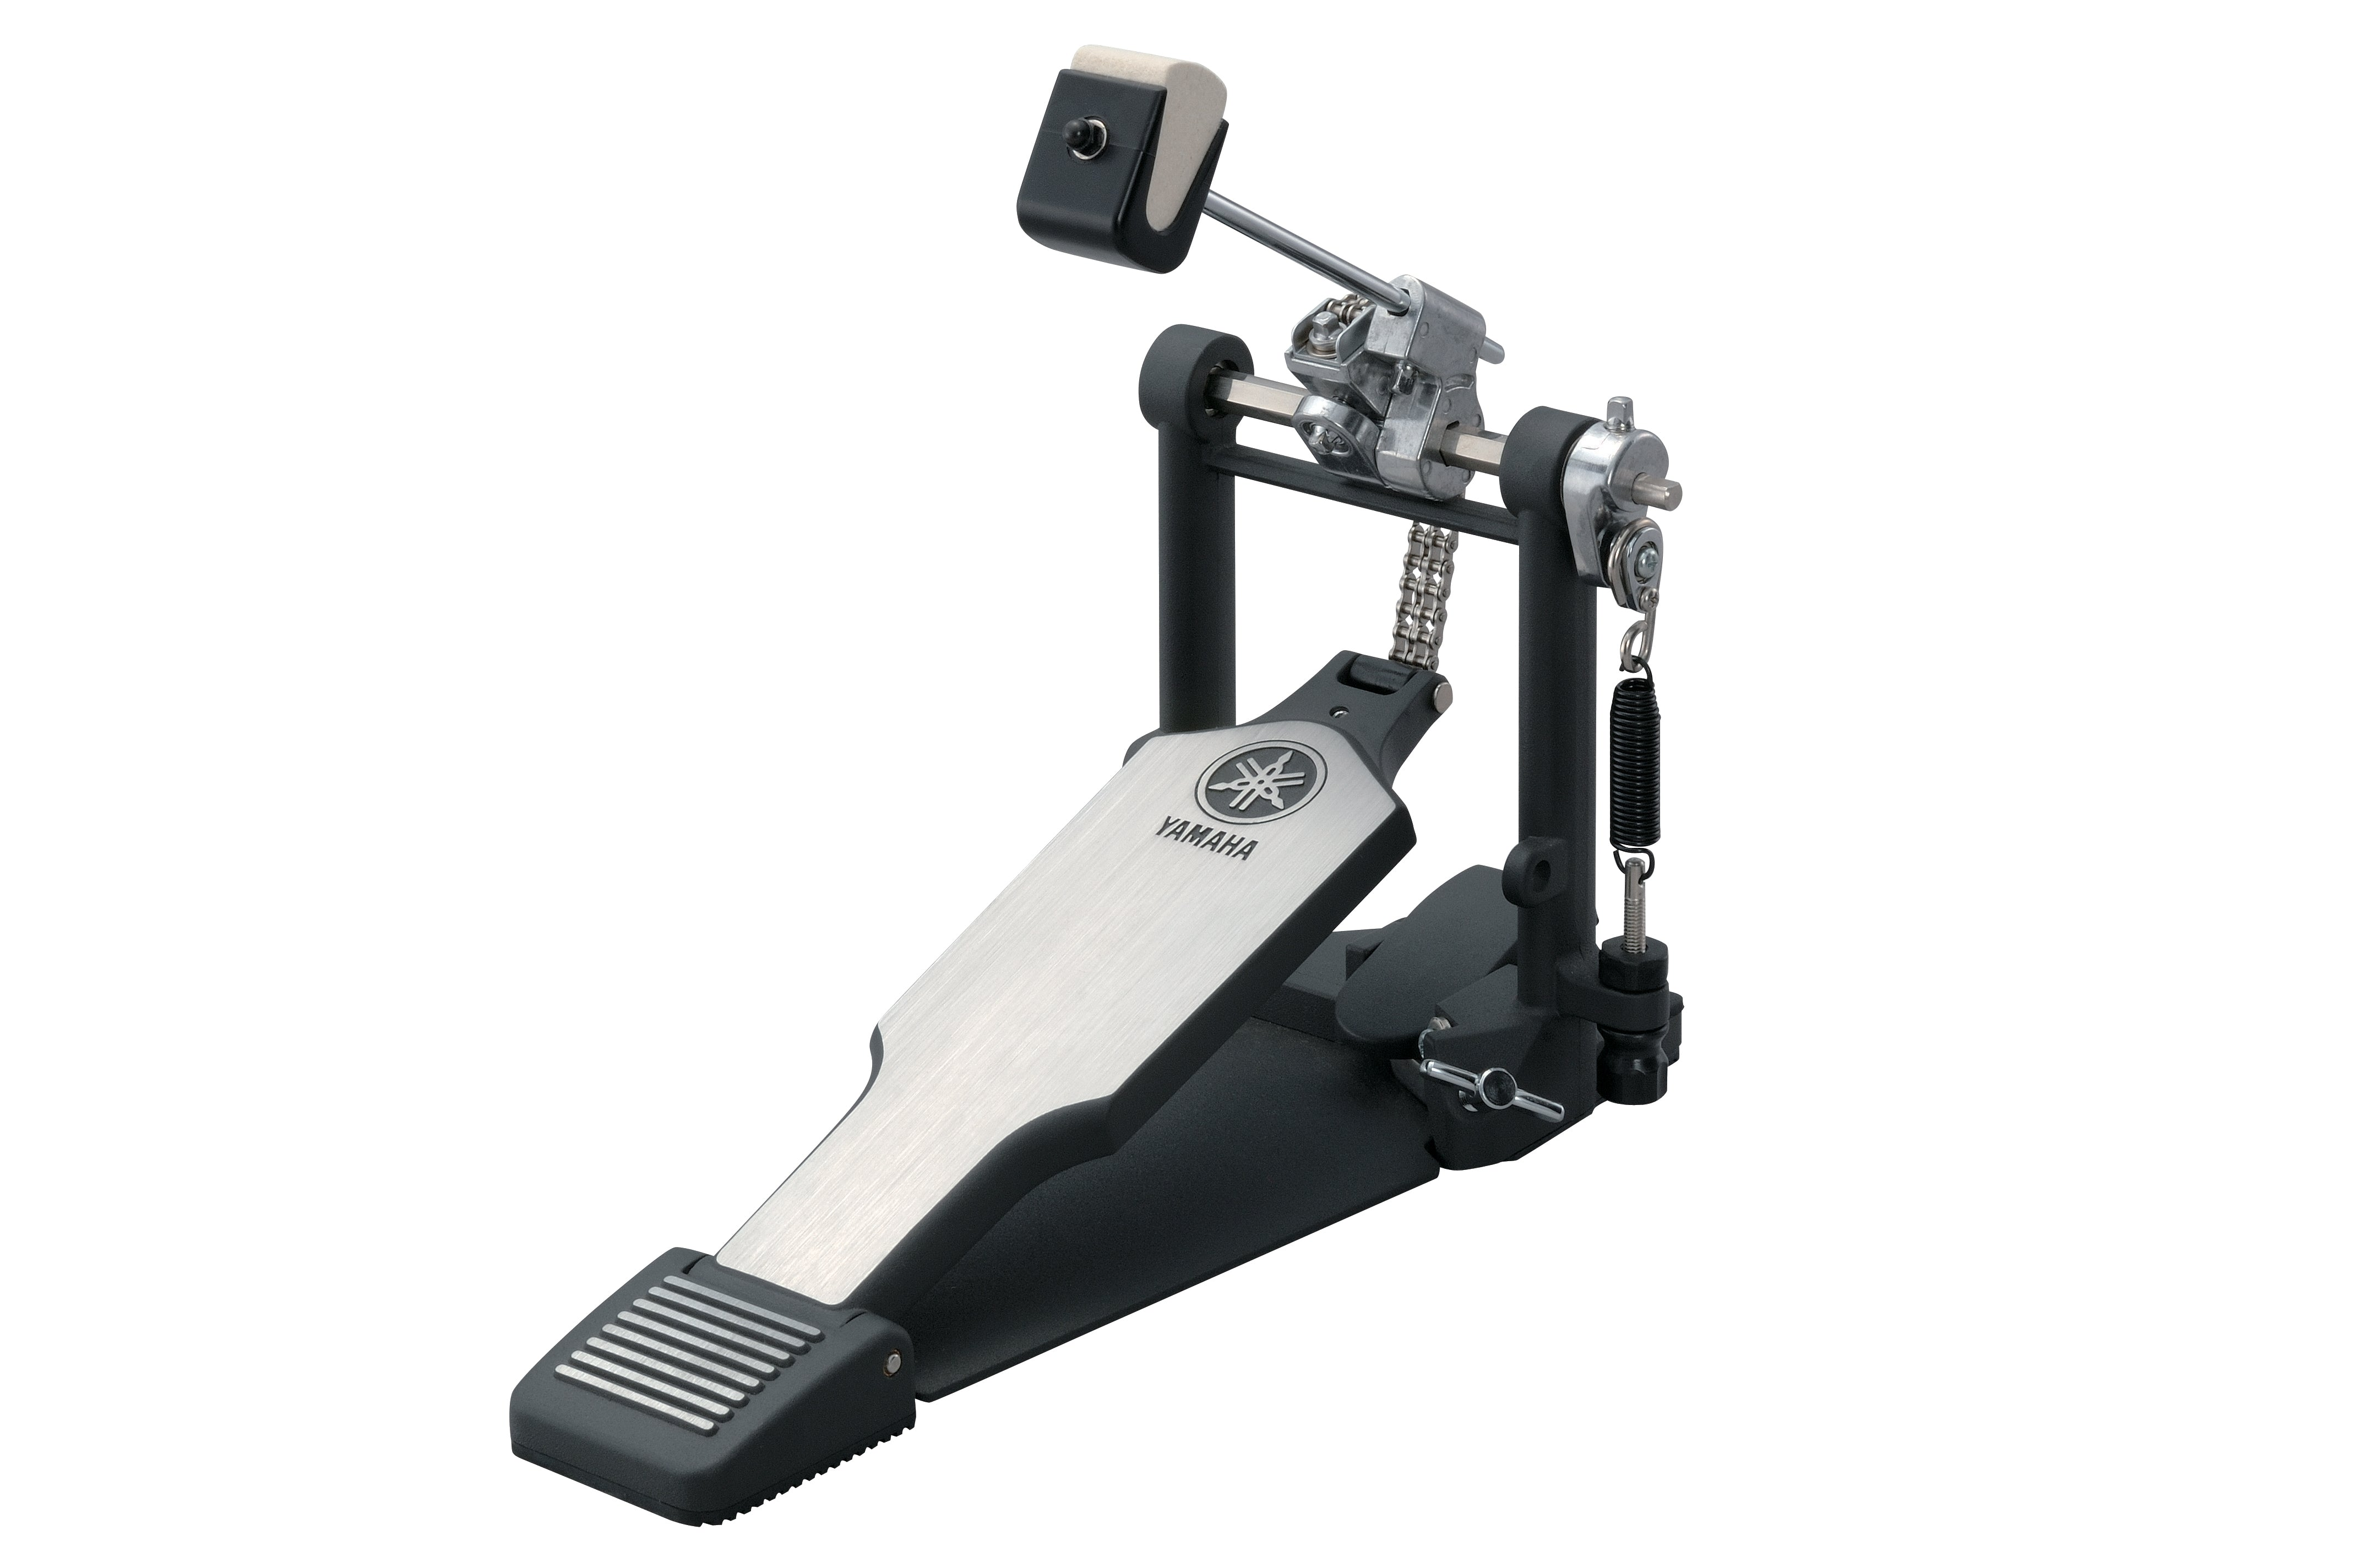 Yamaha FP 9500C Double Chain Drive Bass Drum Pedal